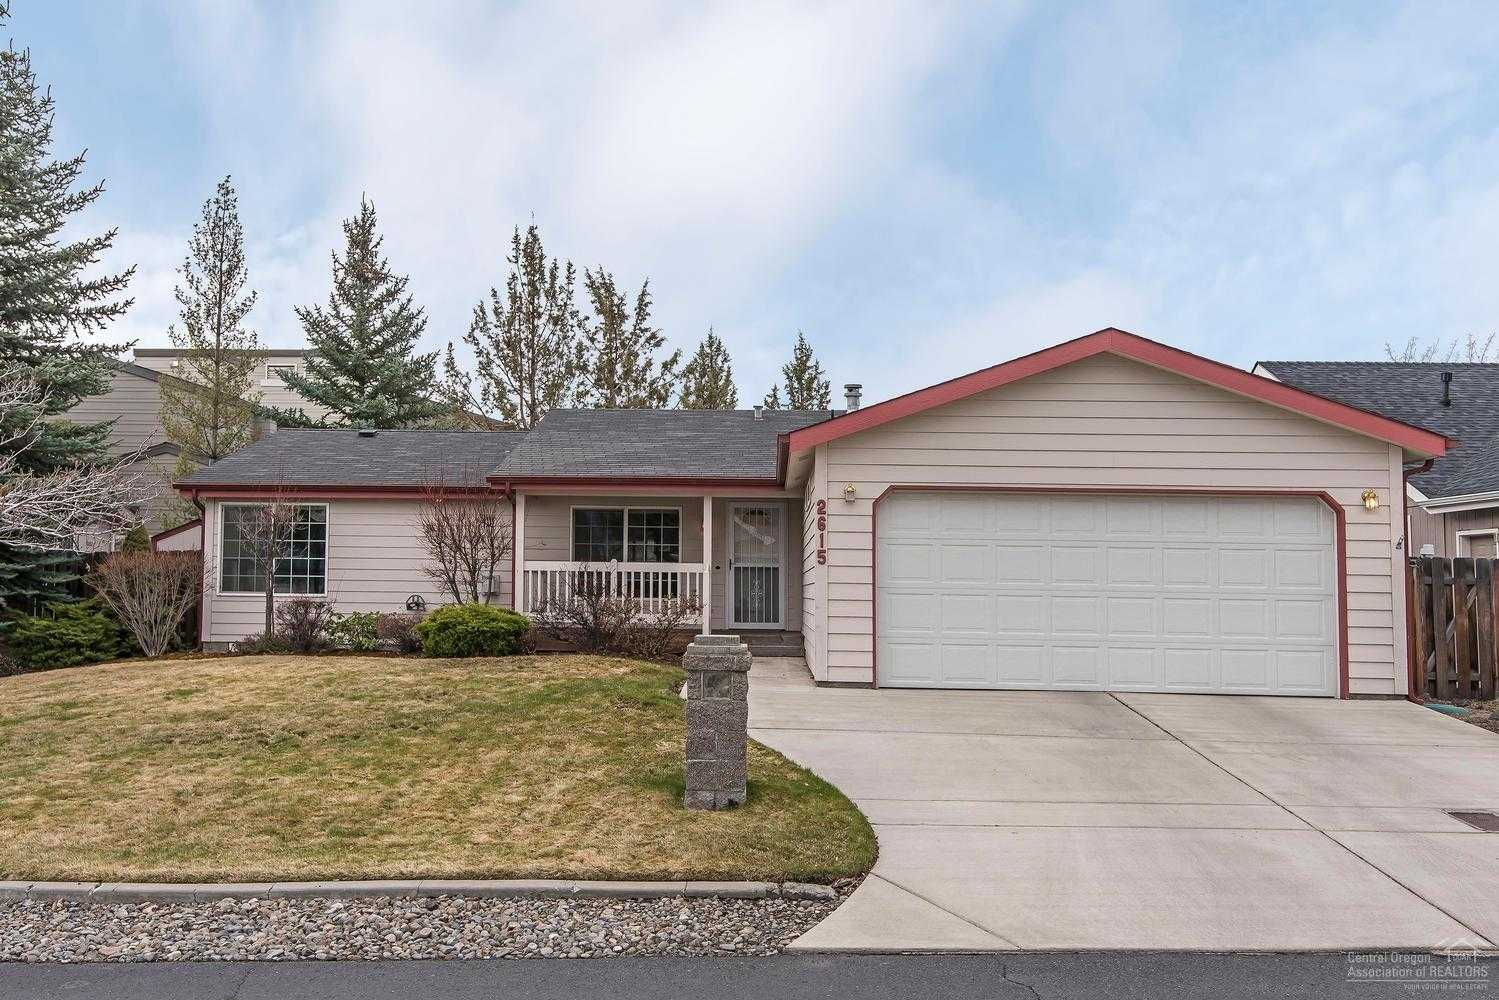 $269,900 - 3Br/2Ba -  for Sale in Bend